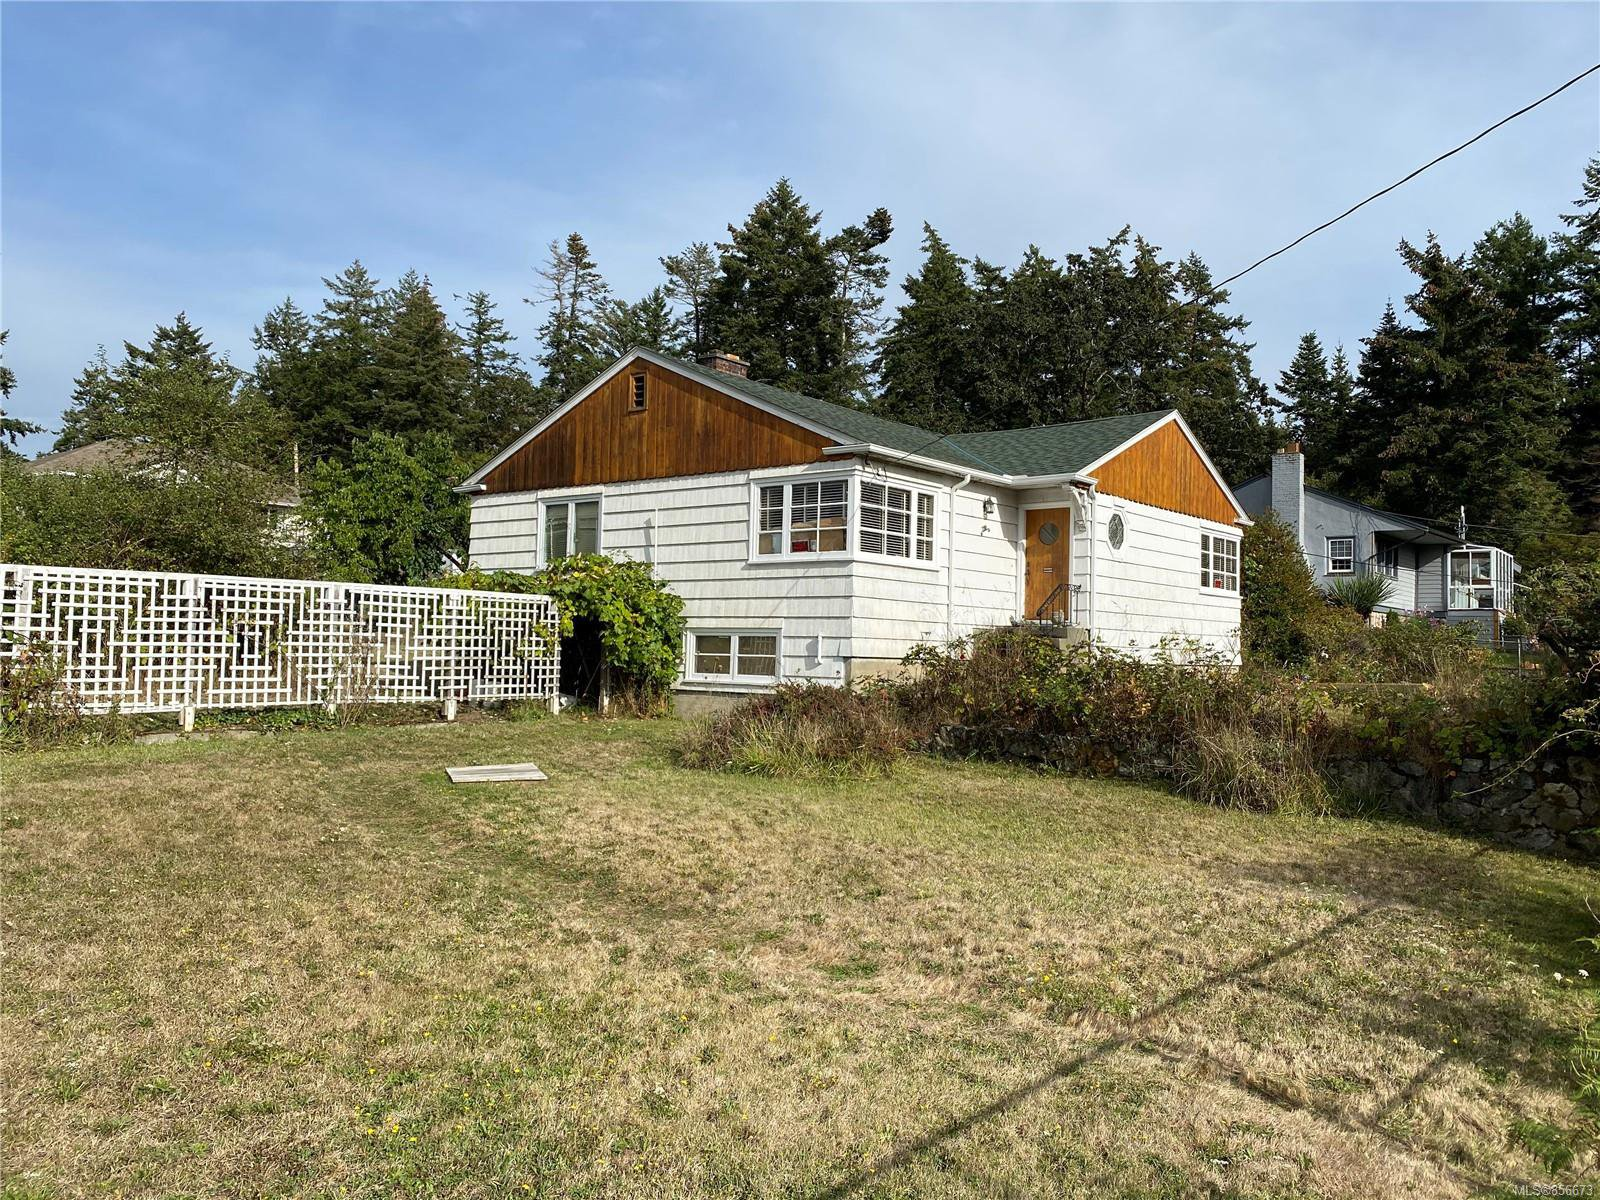 Main Photo: 710 Violet Ave in : SW Marigold House for sale (Saanich West)  : MLS®# 856673